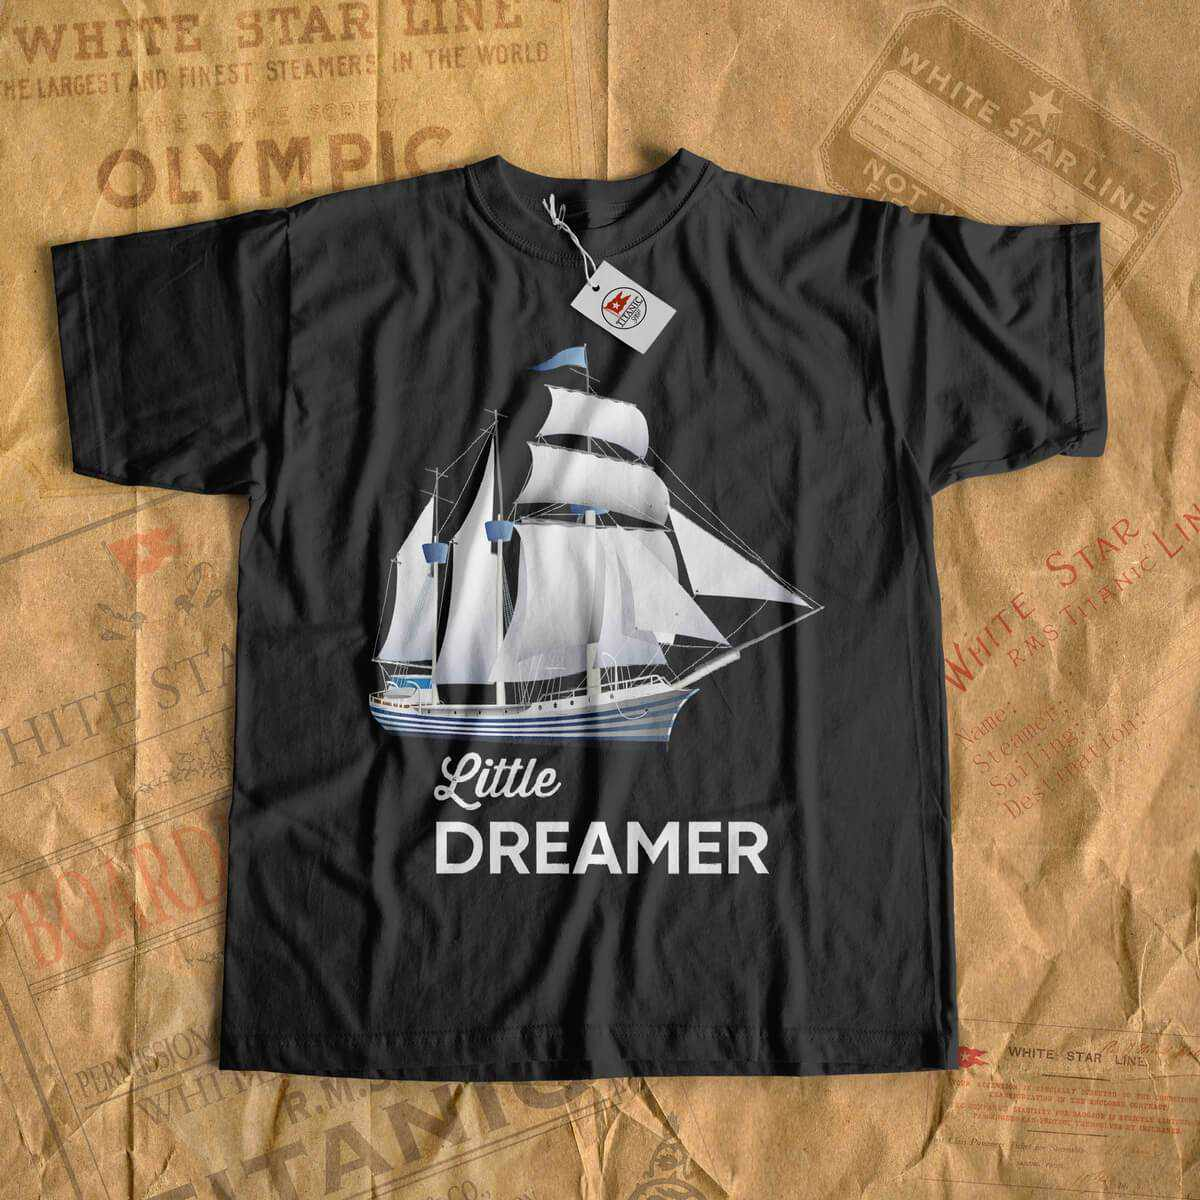 Little dreamer - romantic shirt for little boy and little girl 6 7 8 years old. Pirate ship shirt, birthday cruise tees, gift for son-T-shirt new-Printify-cruise-sea-ocean-nautical-tee-shirt-tshirt-Titanic shop